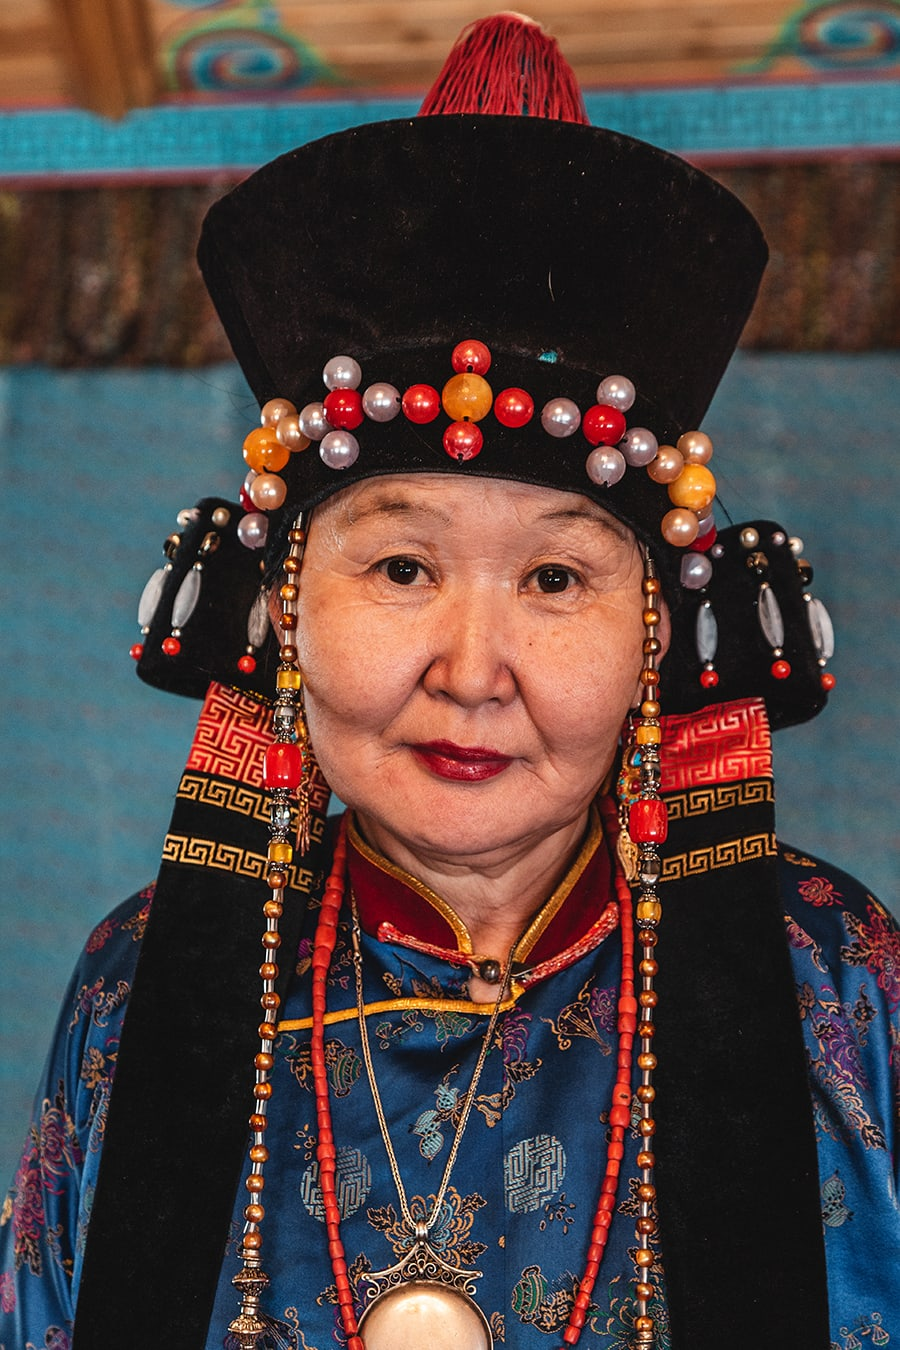 A Buryat woman dressed in traditional attire.